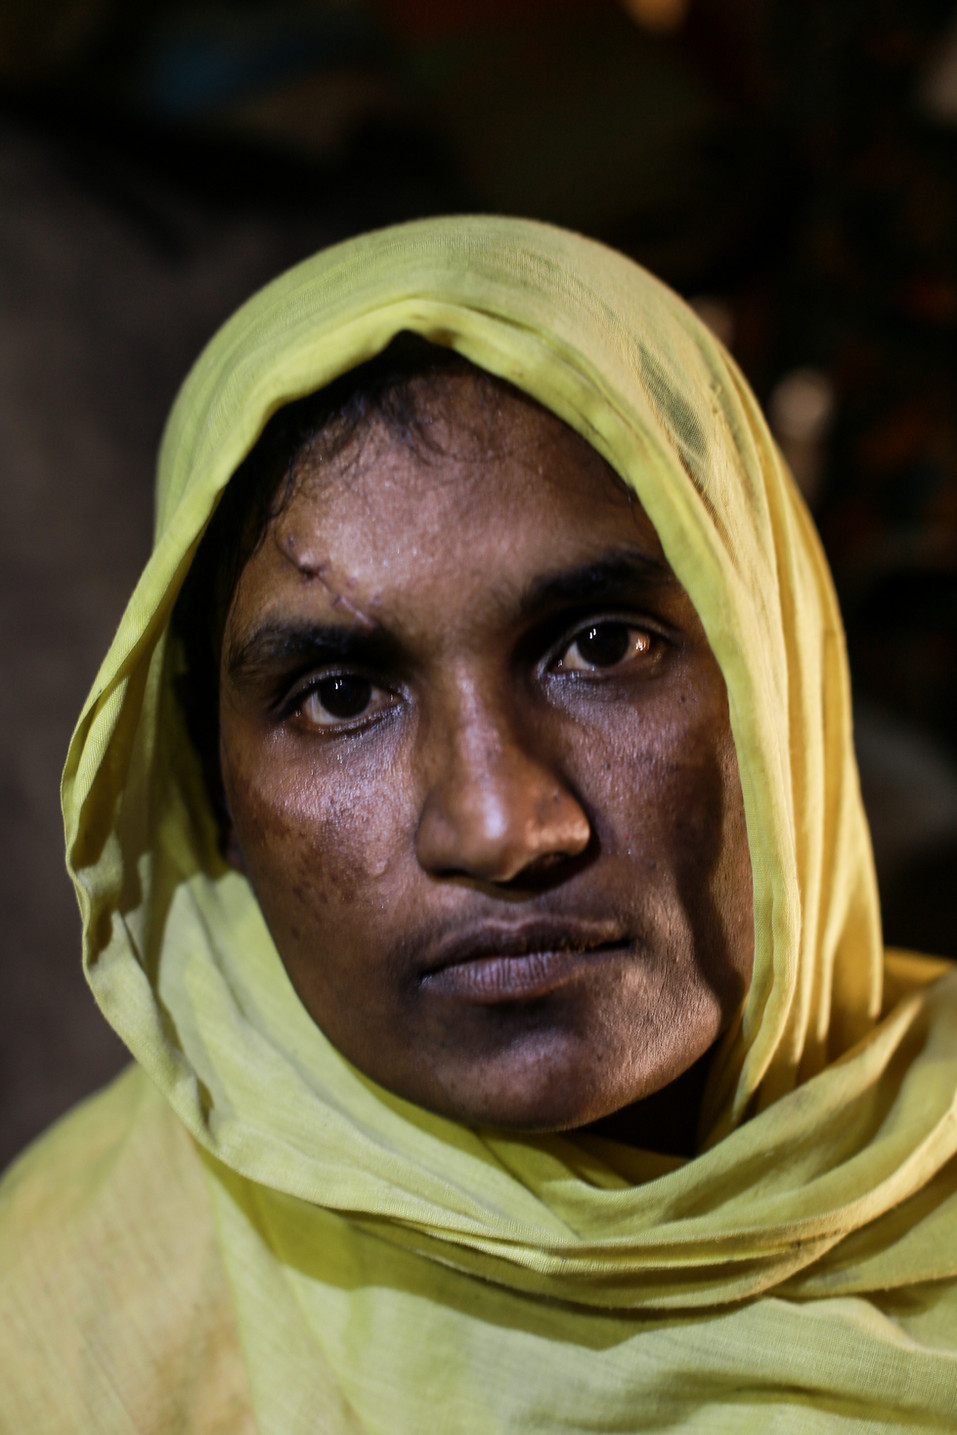 Jharima Khatul (Mother of Khaleda & Mohammed Rofik) - 40